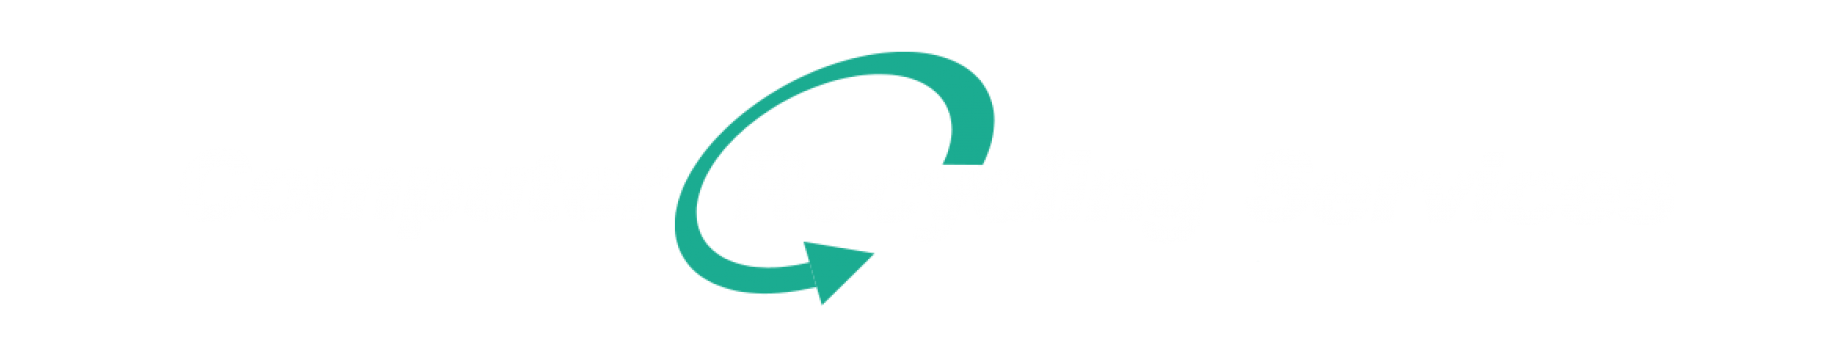 Computer Recycling Services Limited